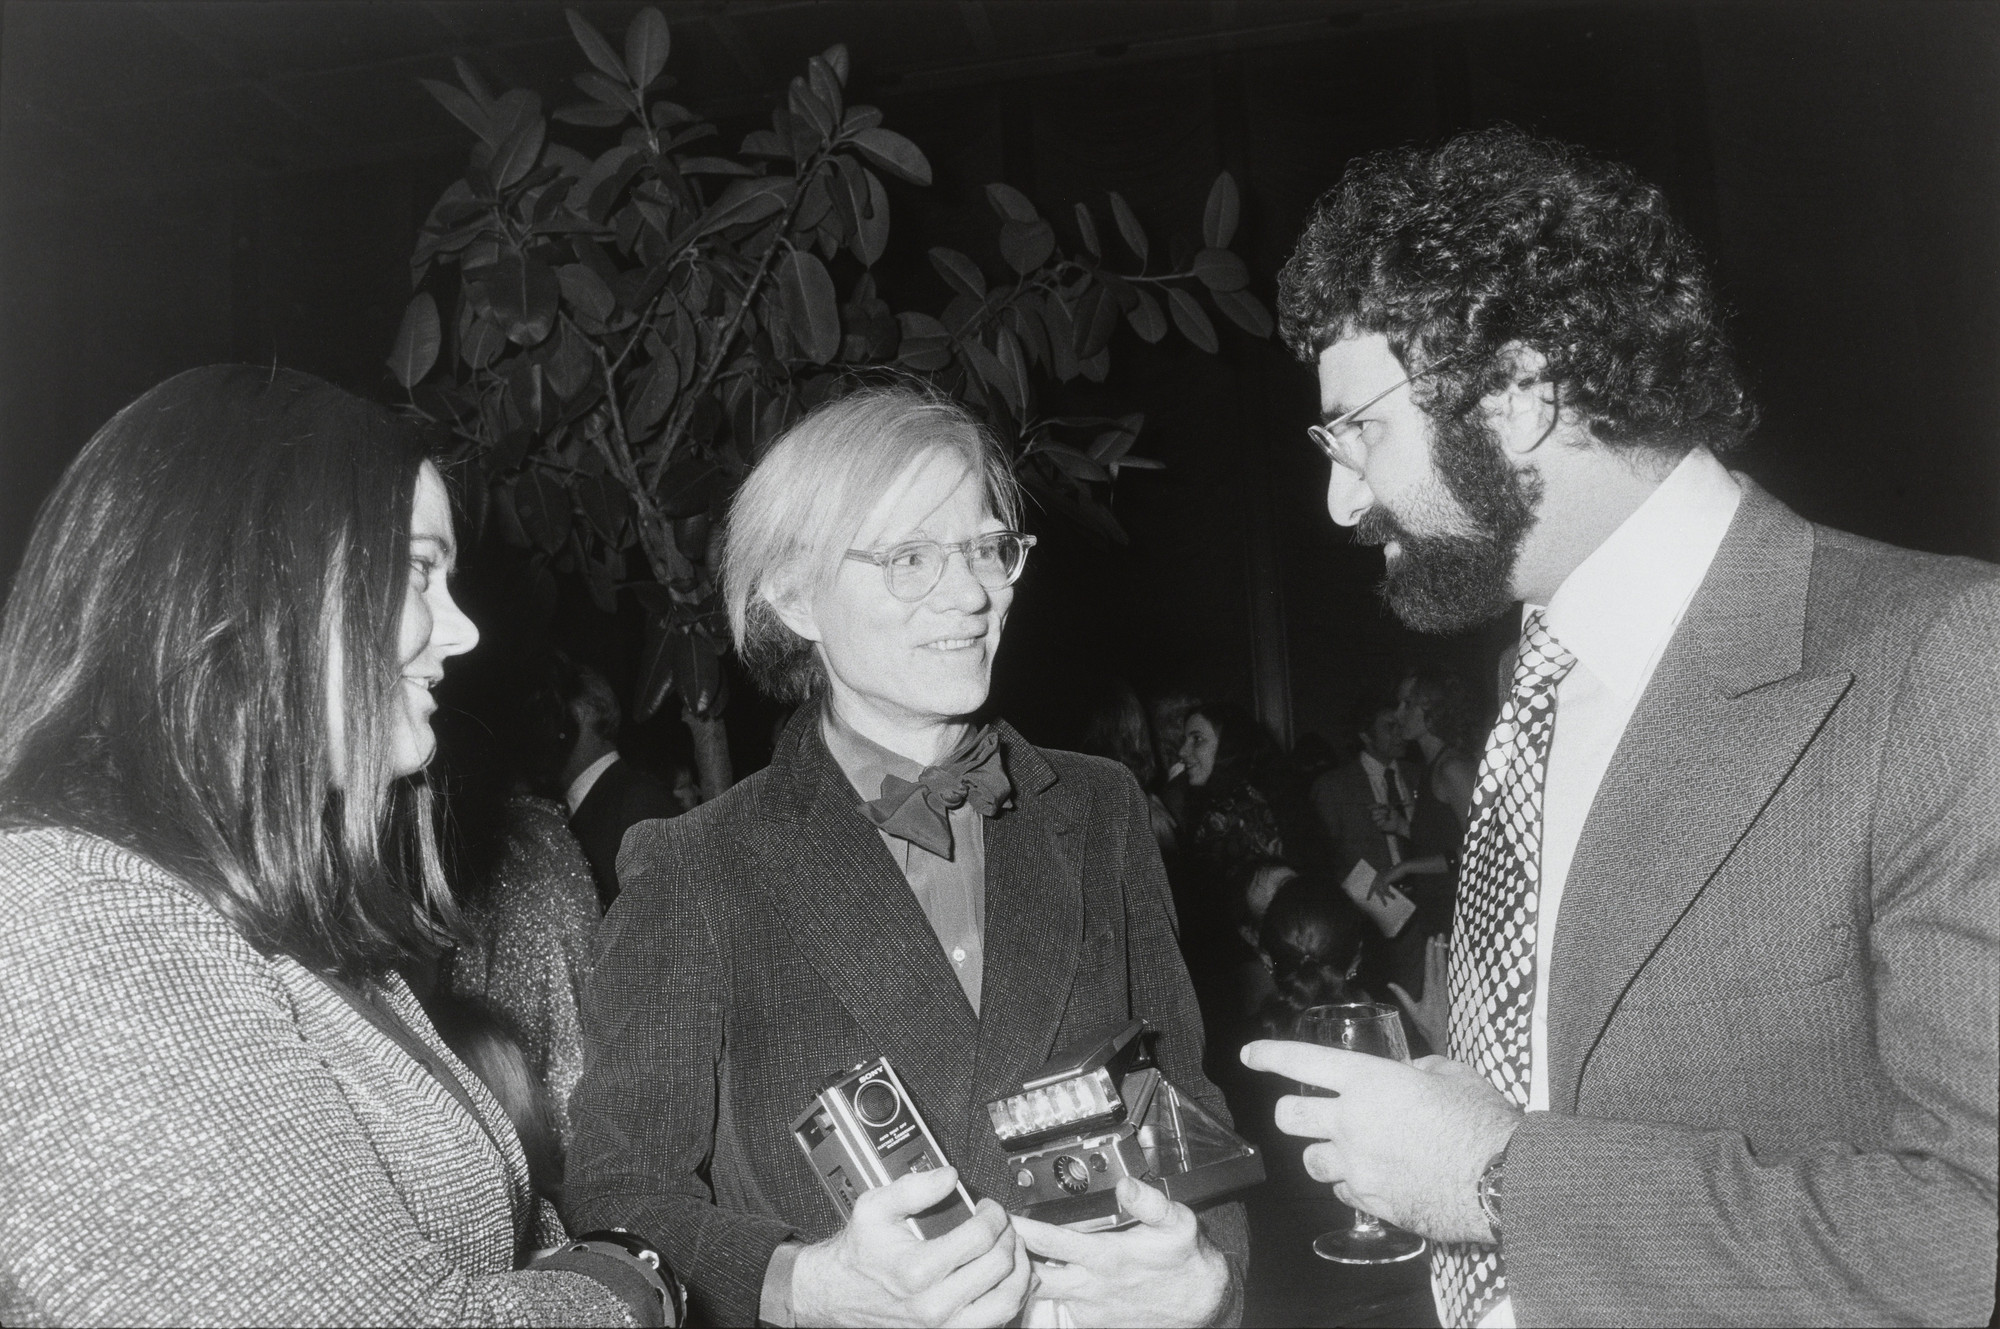 Garry Winogrand. Andy Warhol, Norman Mailer's 50th Birthday Party, New York City from the portfolio Big Shots. 1973